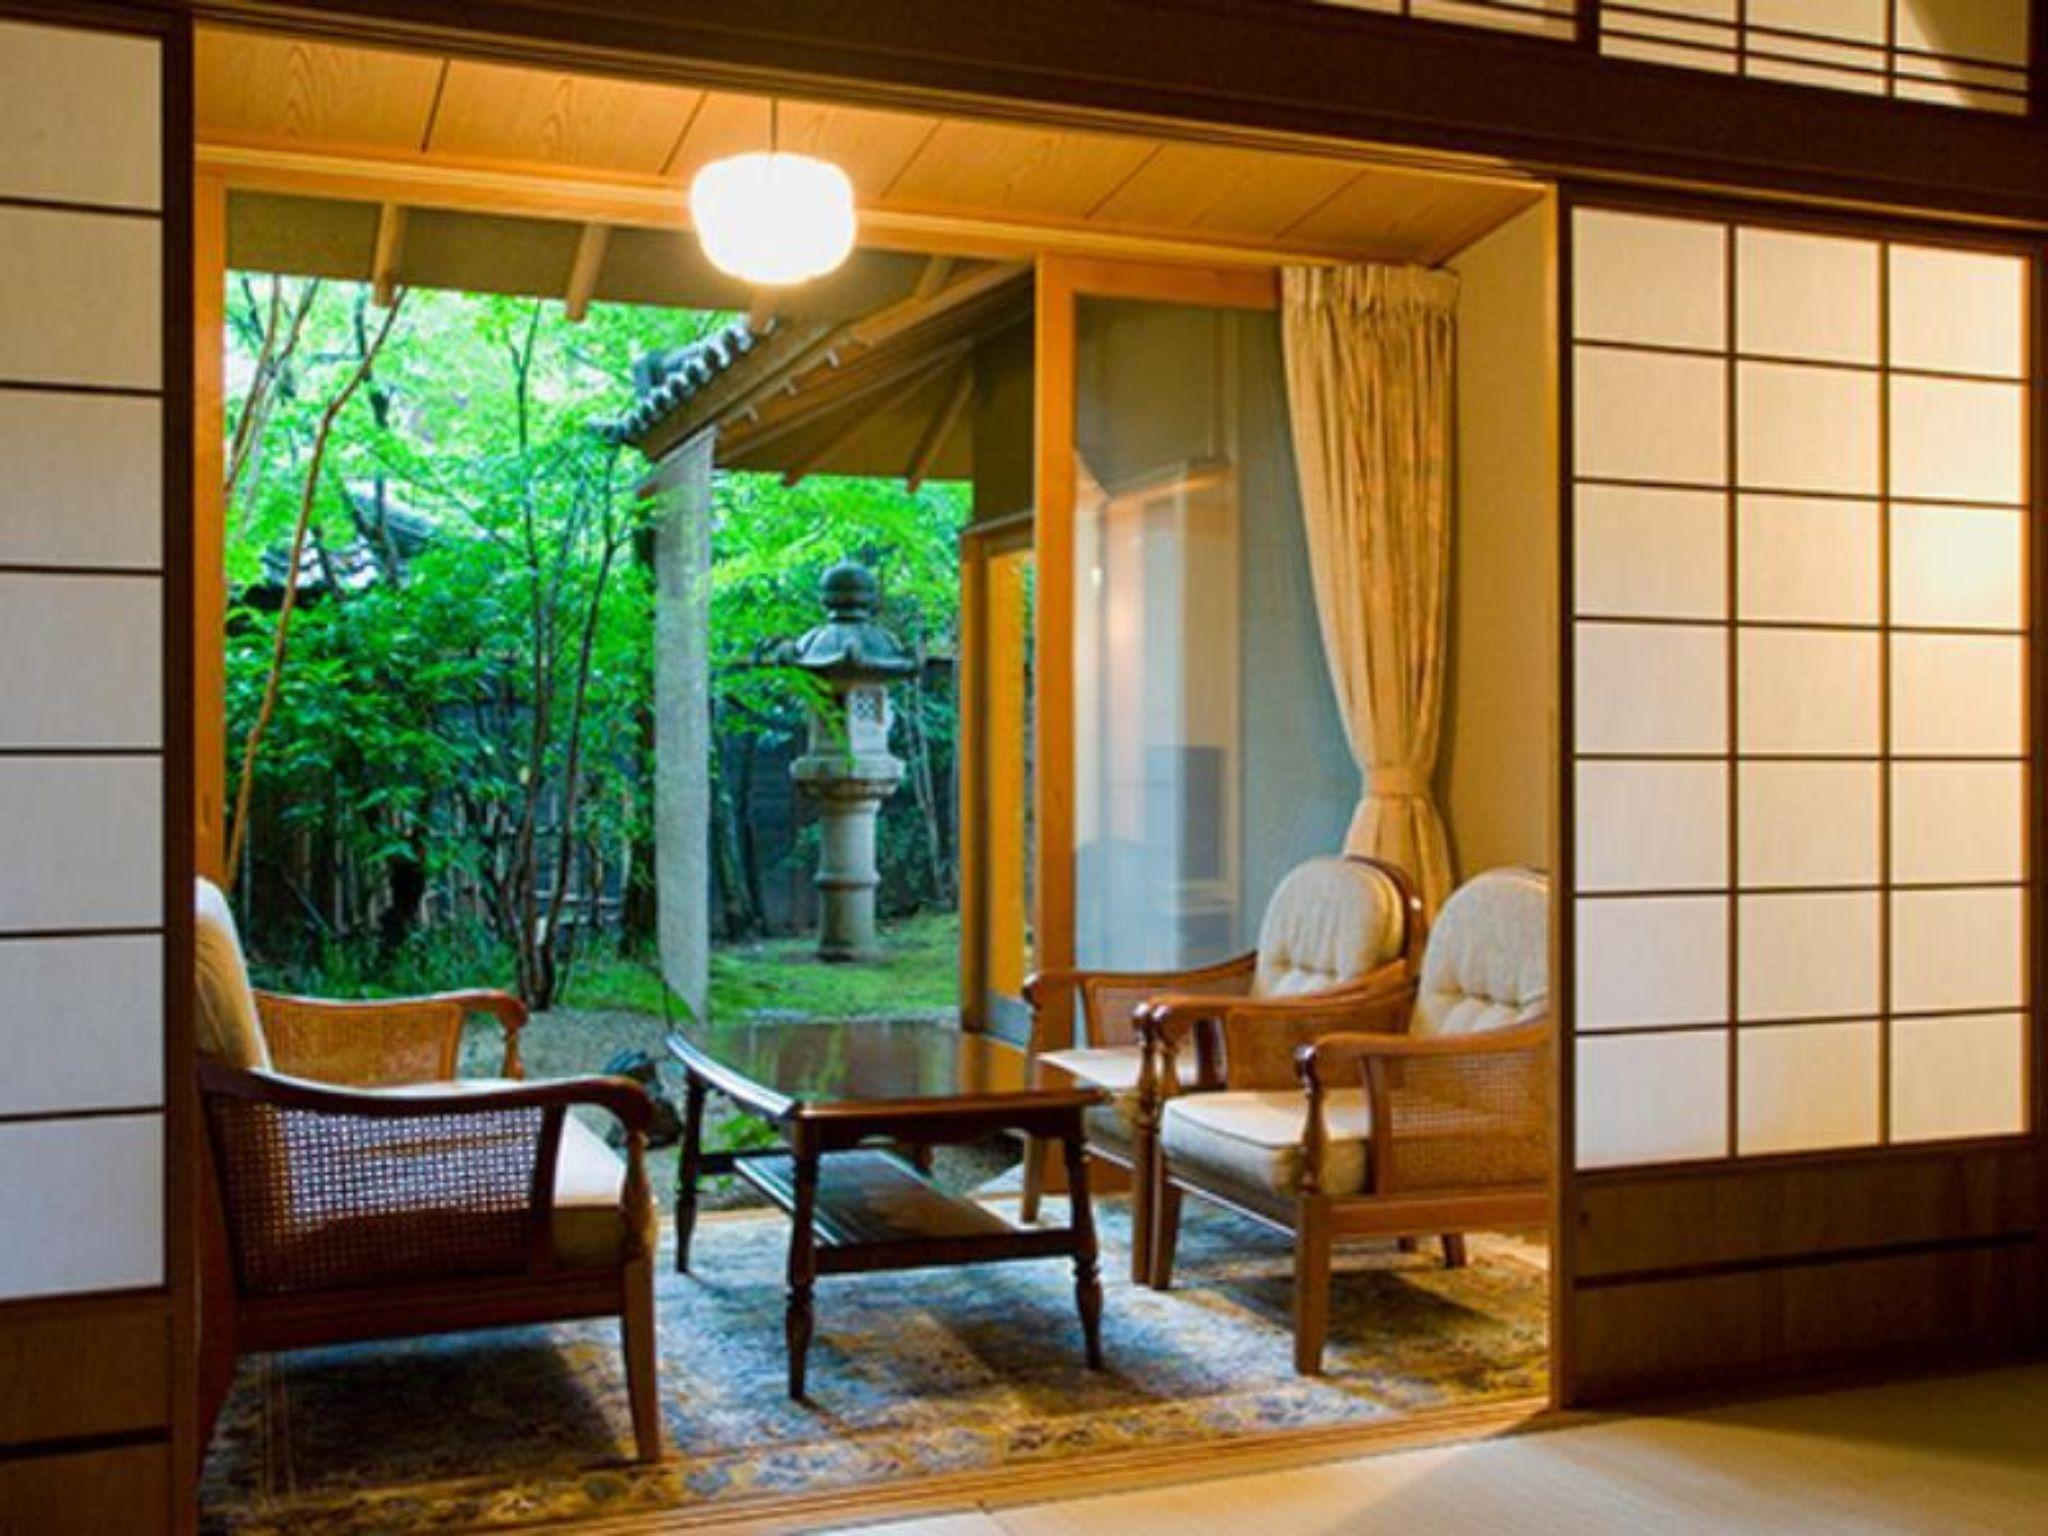 Japanese Style Room with 18 Tatami